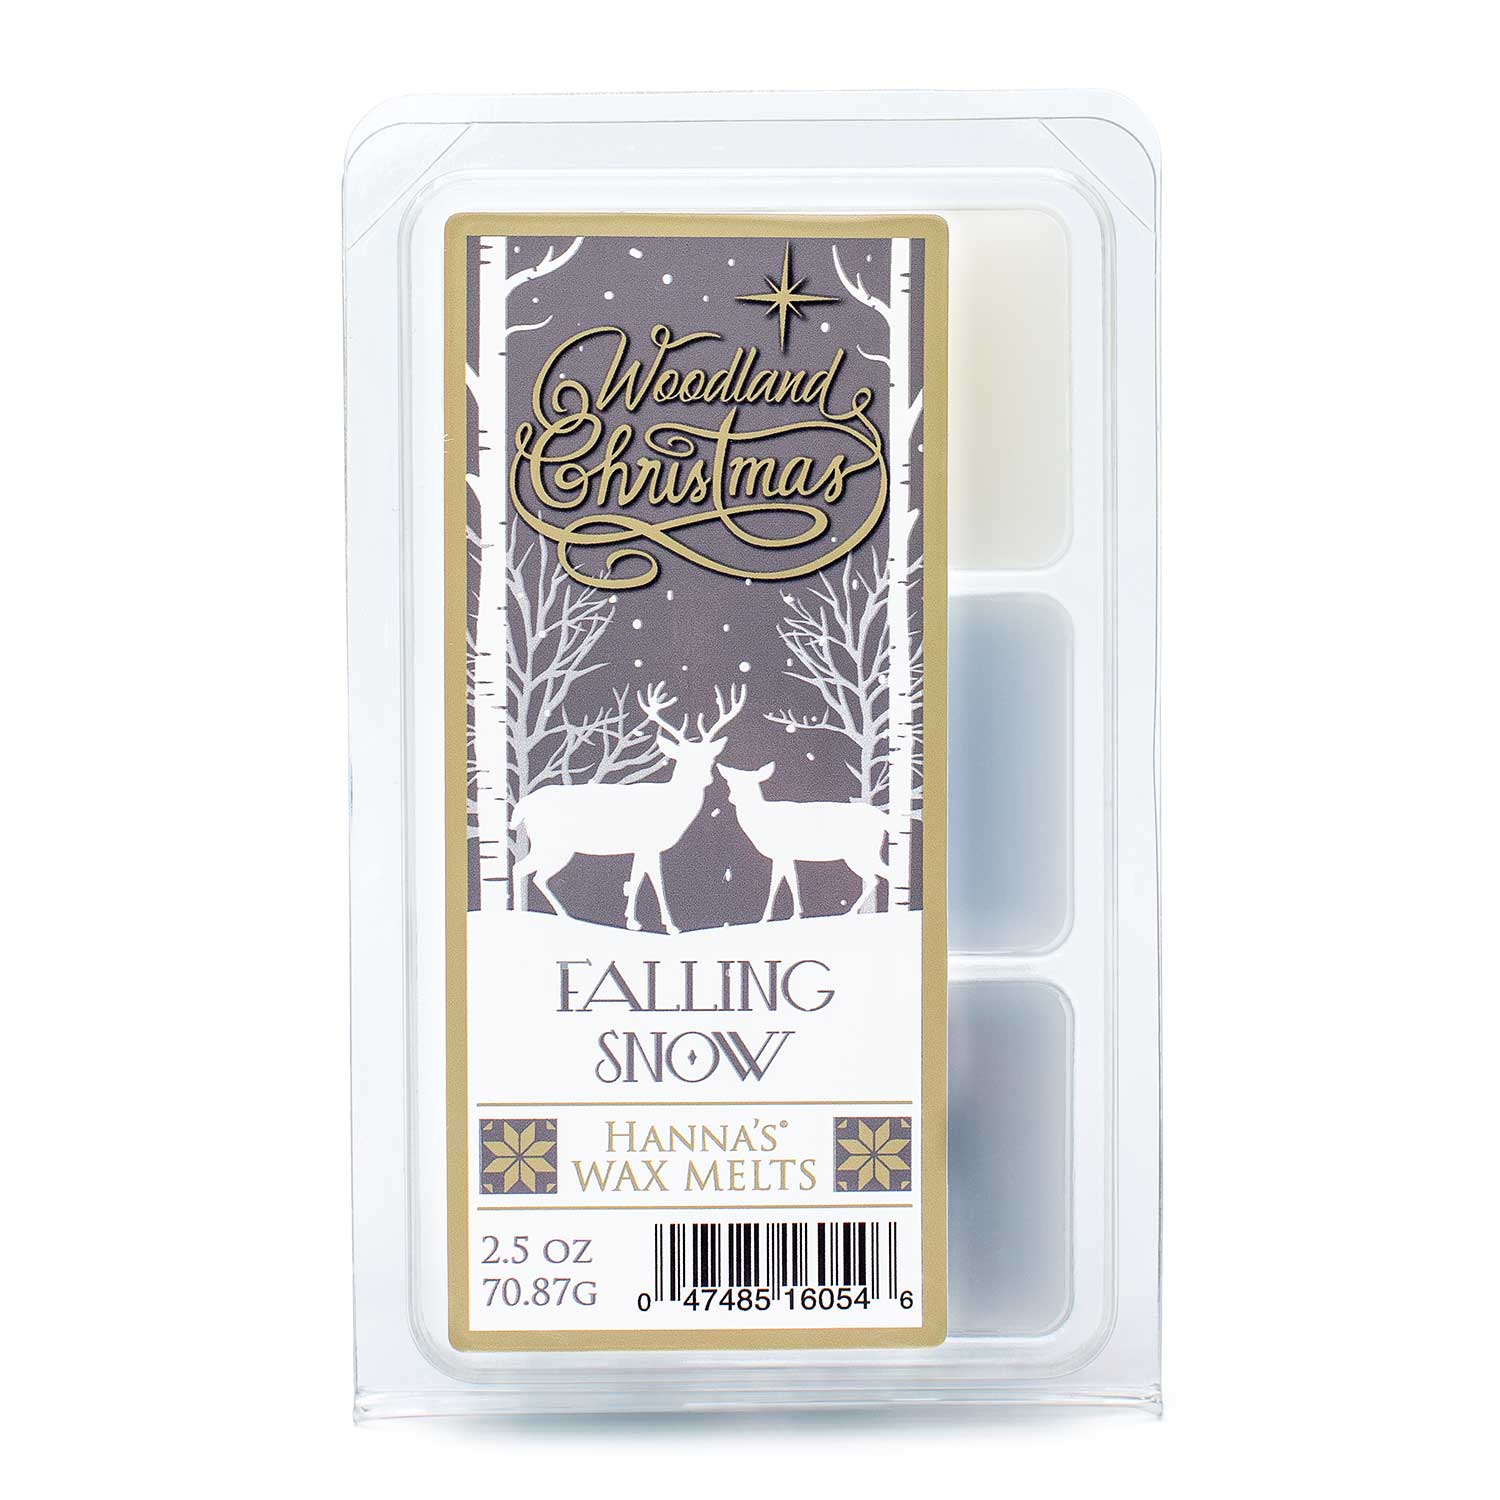 Falling Snow Scented Wax Melts